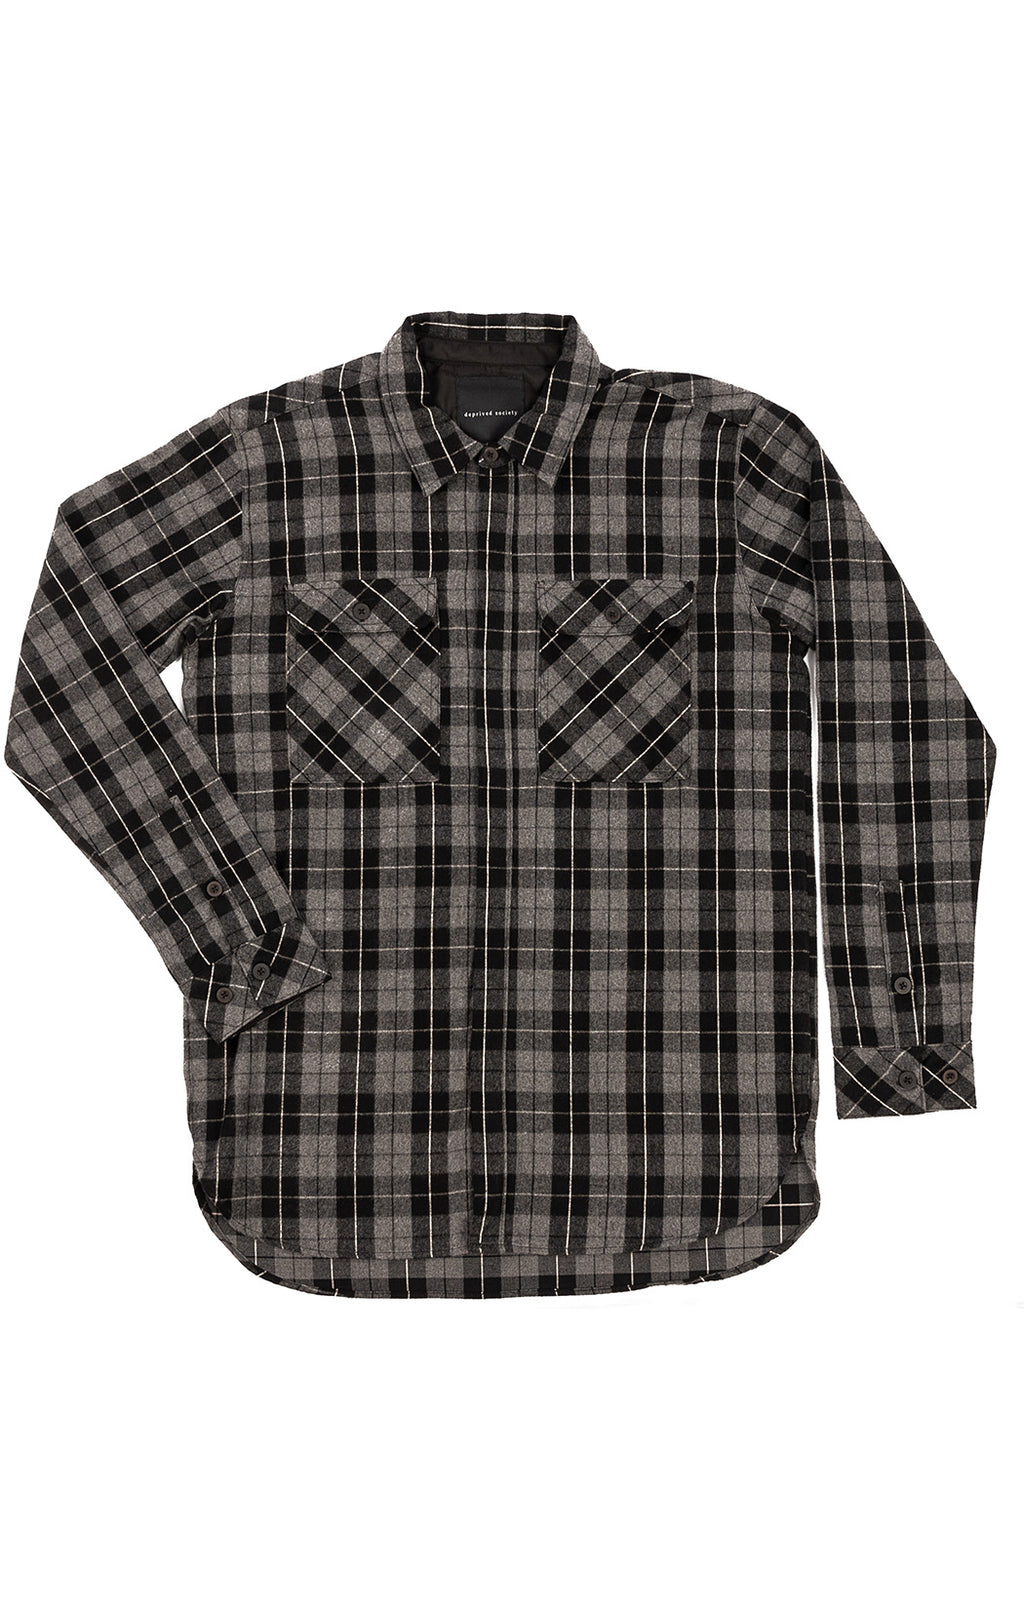 Black and gray plaid button down long sleeve shirt with two front patch pockets